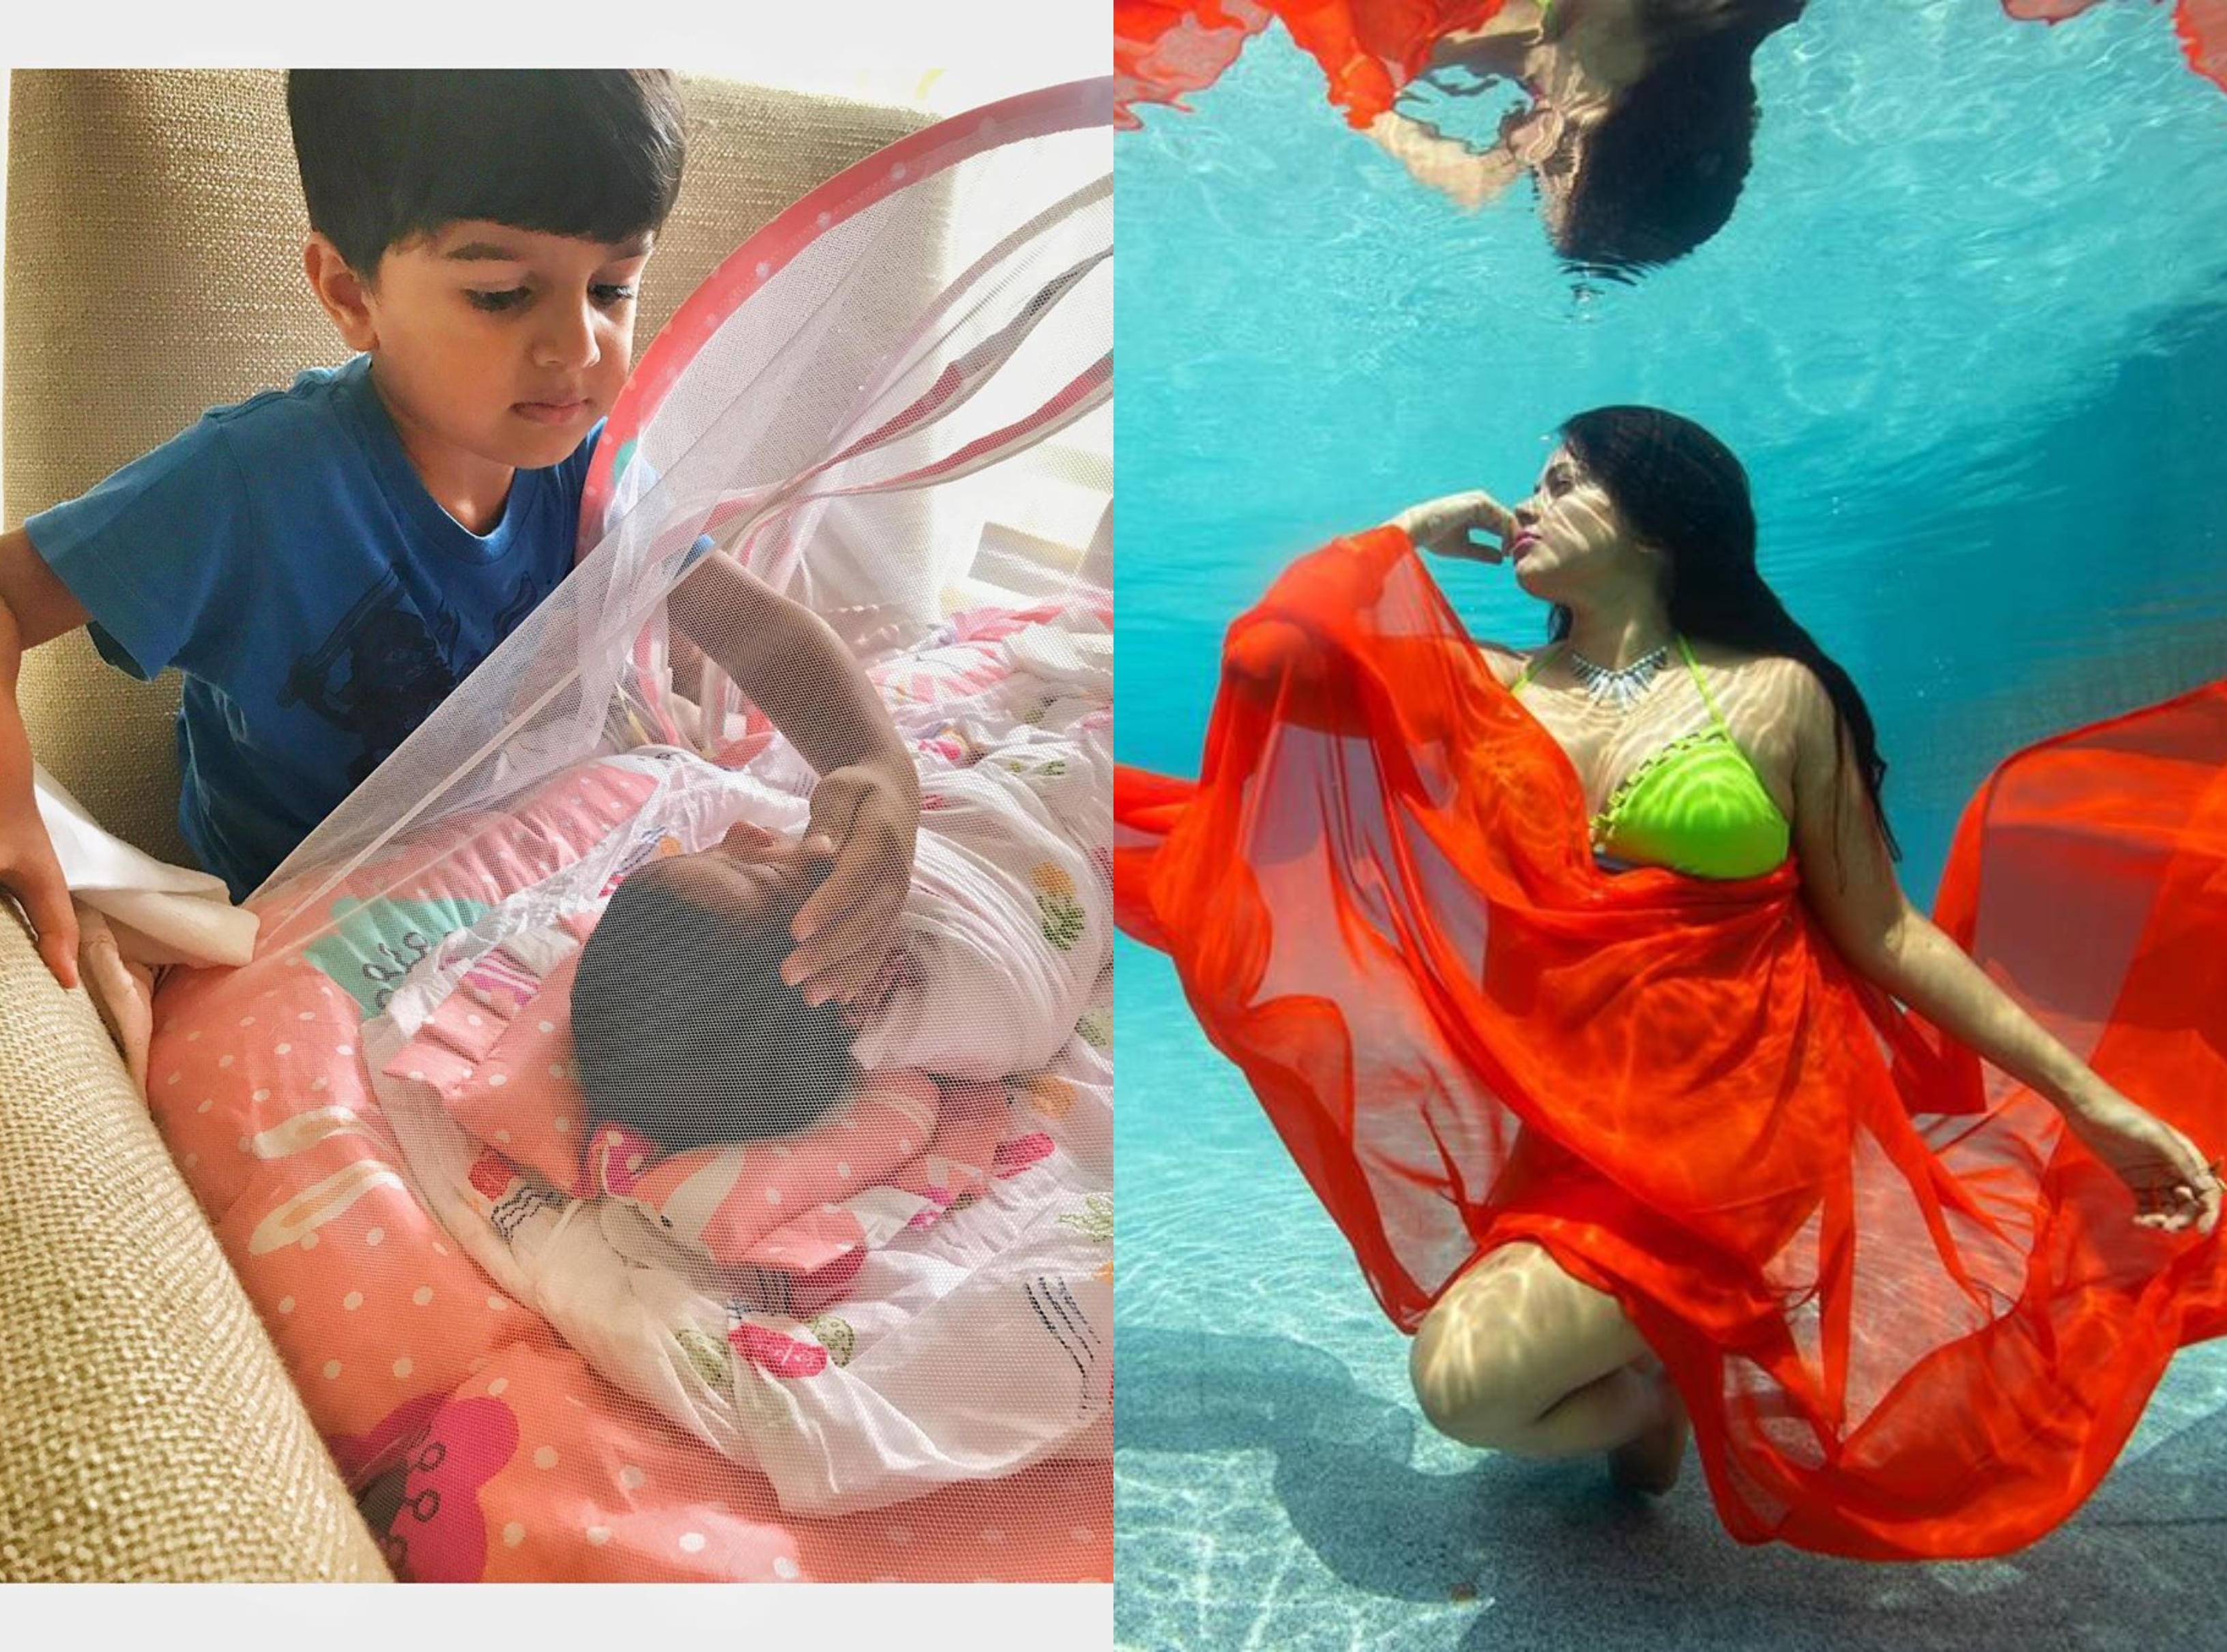 Love at first sight...Sameera's son 'fascinated' by his newborn sister